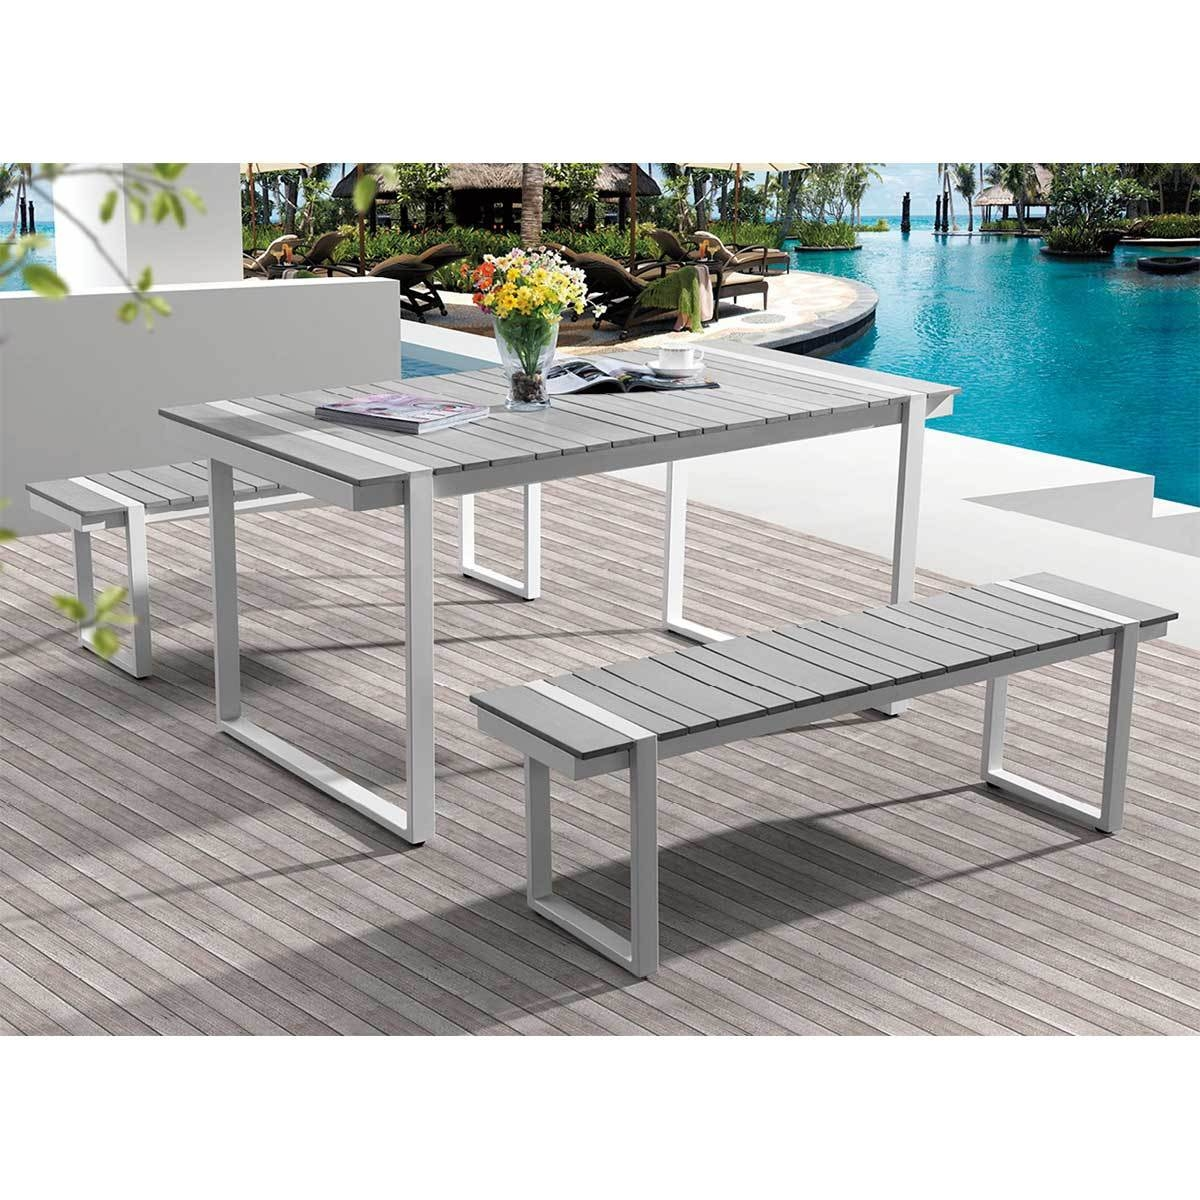 Table Pvc Exterieur Table Alu Exterieur Simple Table De Jardin En Aluminium